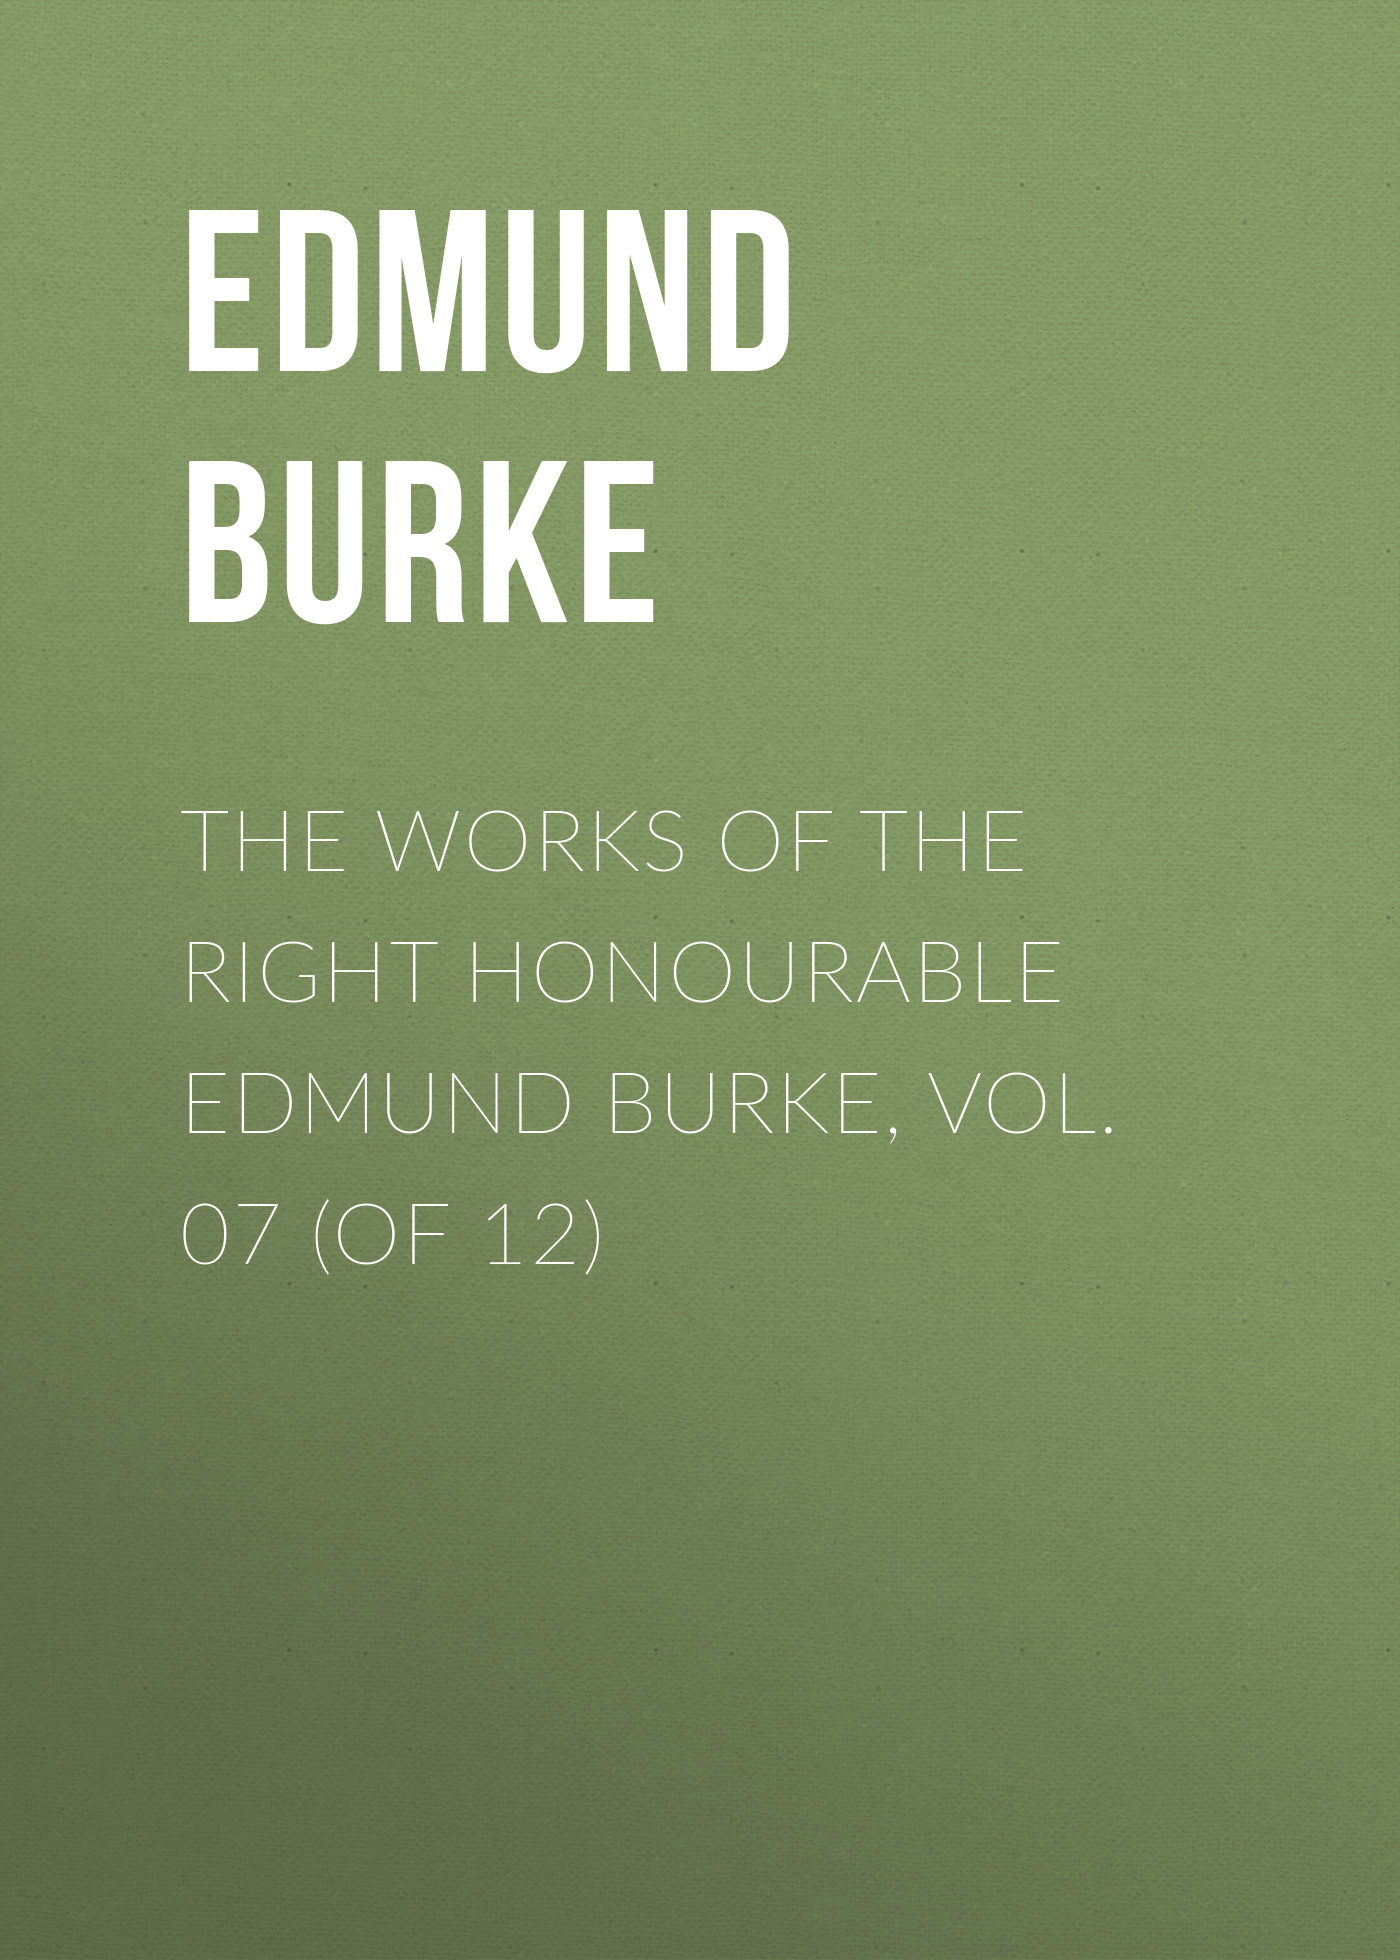 Edmund Burke The Works of the Right Honourable Edmund Burke, Vol. 07 (of 12) edmund burke the works of the right honourable edmund burke vol 02 of 12